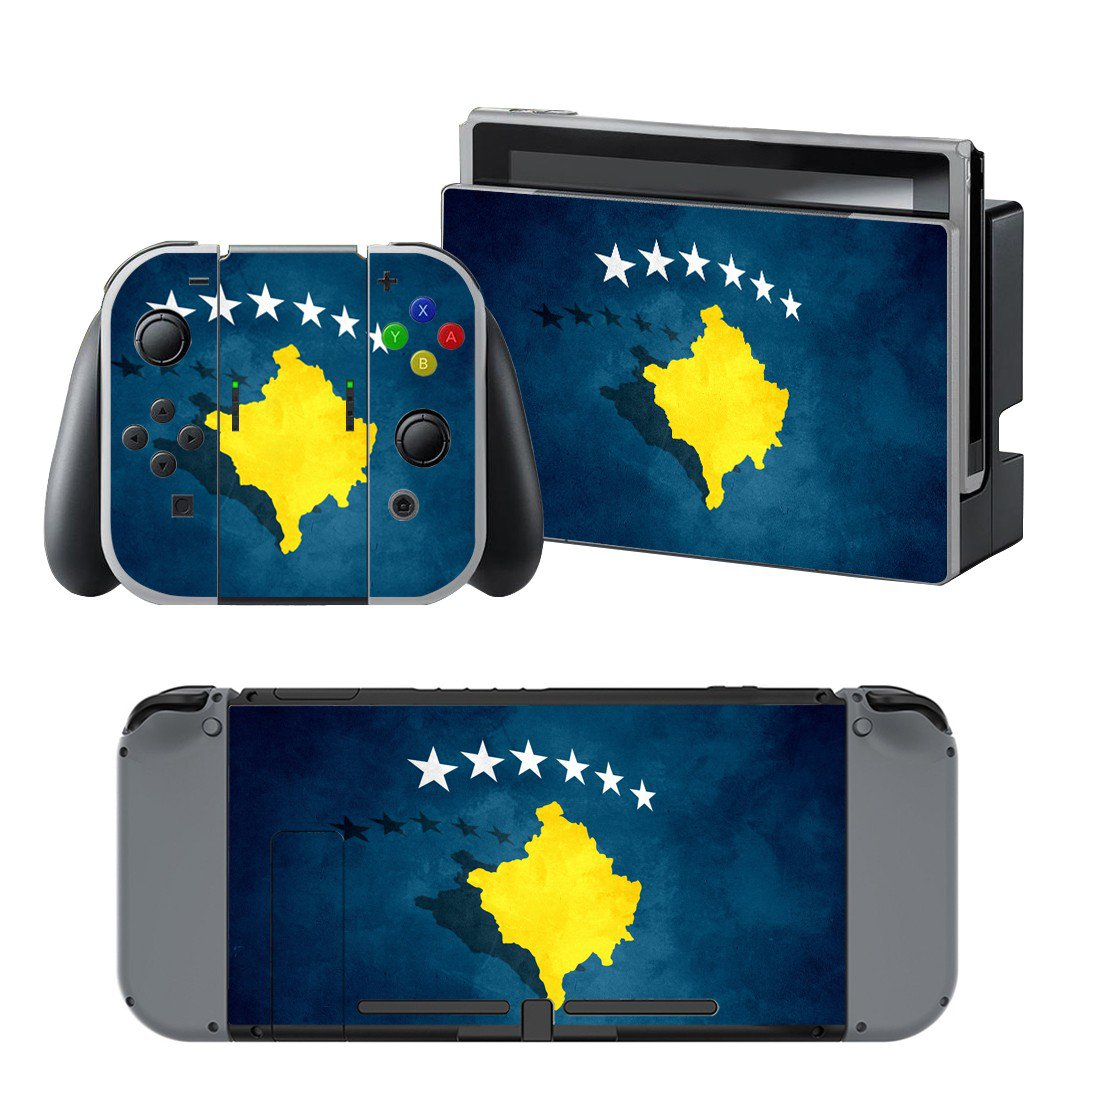 Kosovo flag design decal for Nintendo switch console sticker skin